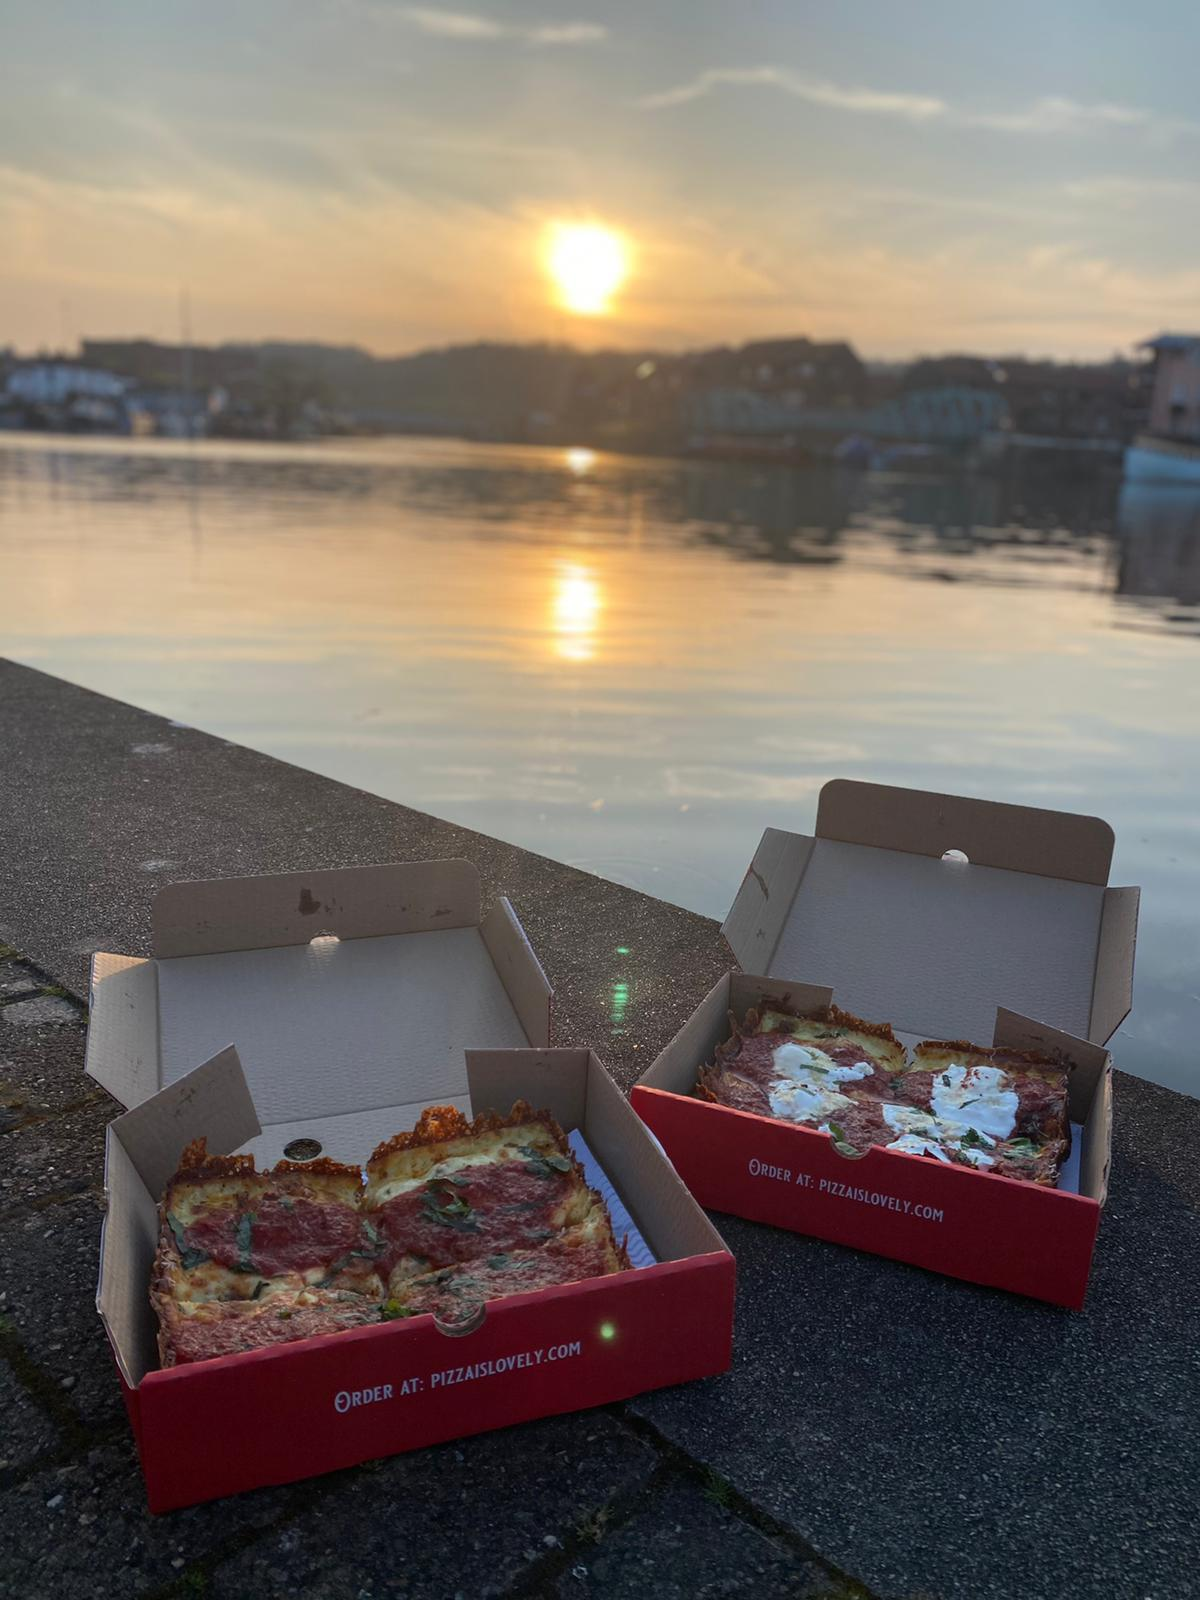 Pizza Is Lovely Bristol